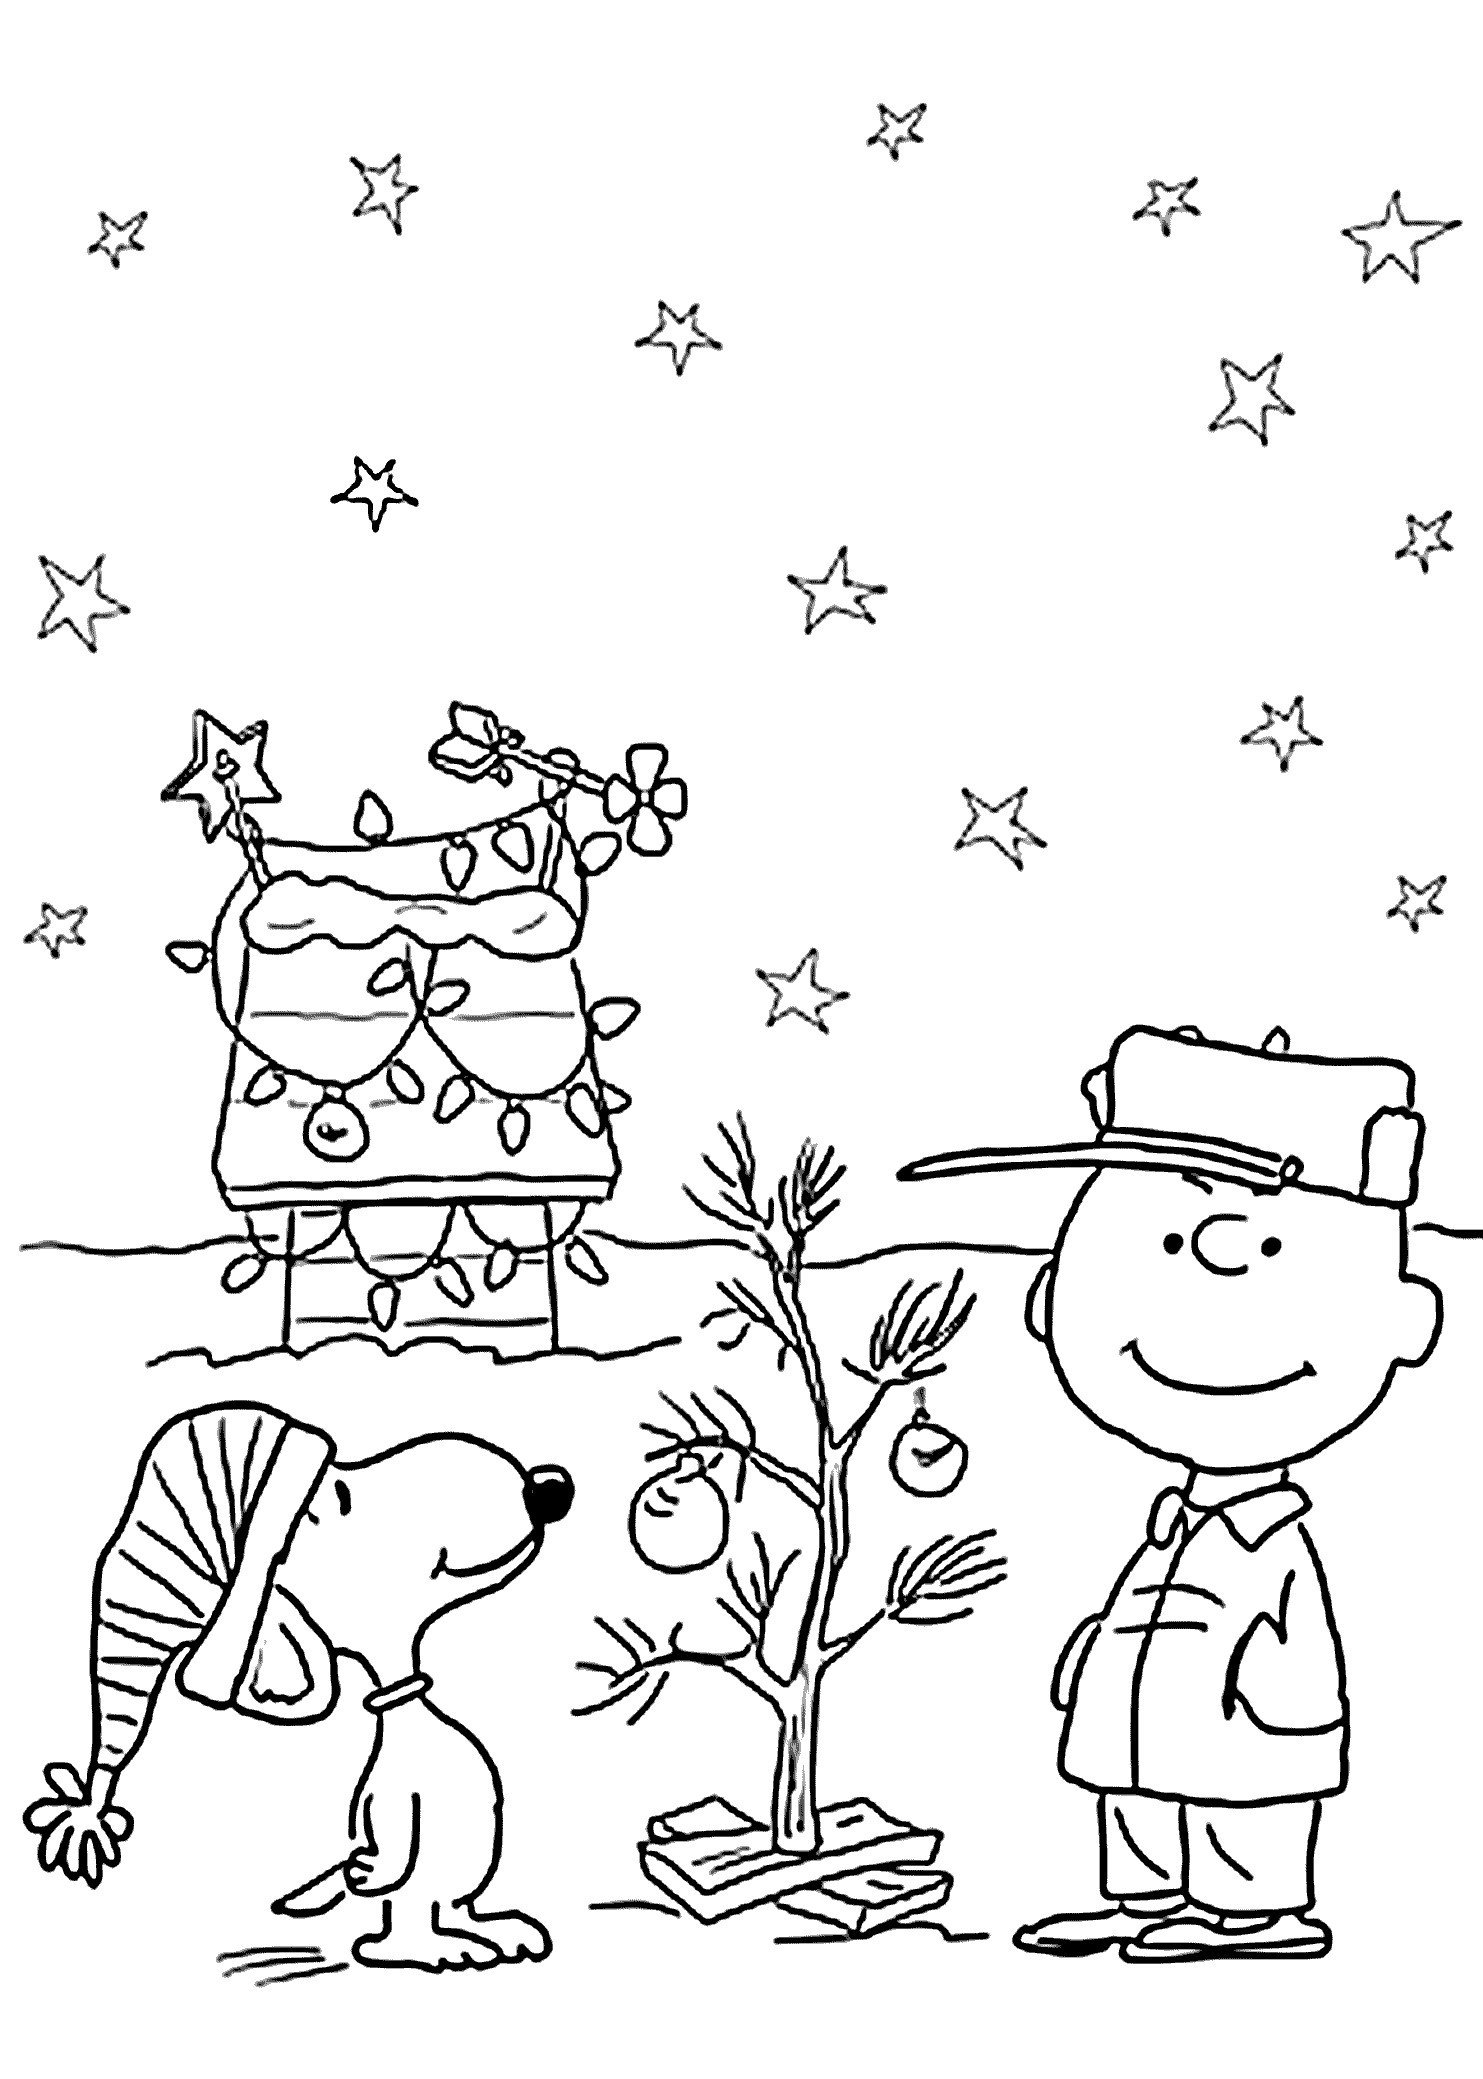 Christmas Coloring Multiplication Worksheets With Pages Math Problems Archives Liderex Co